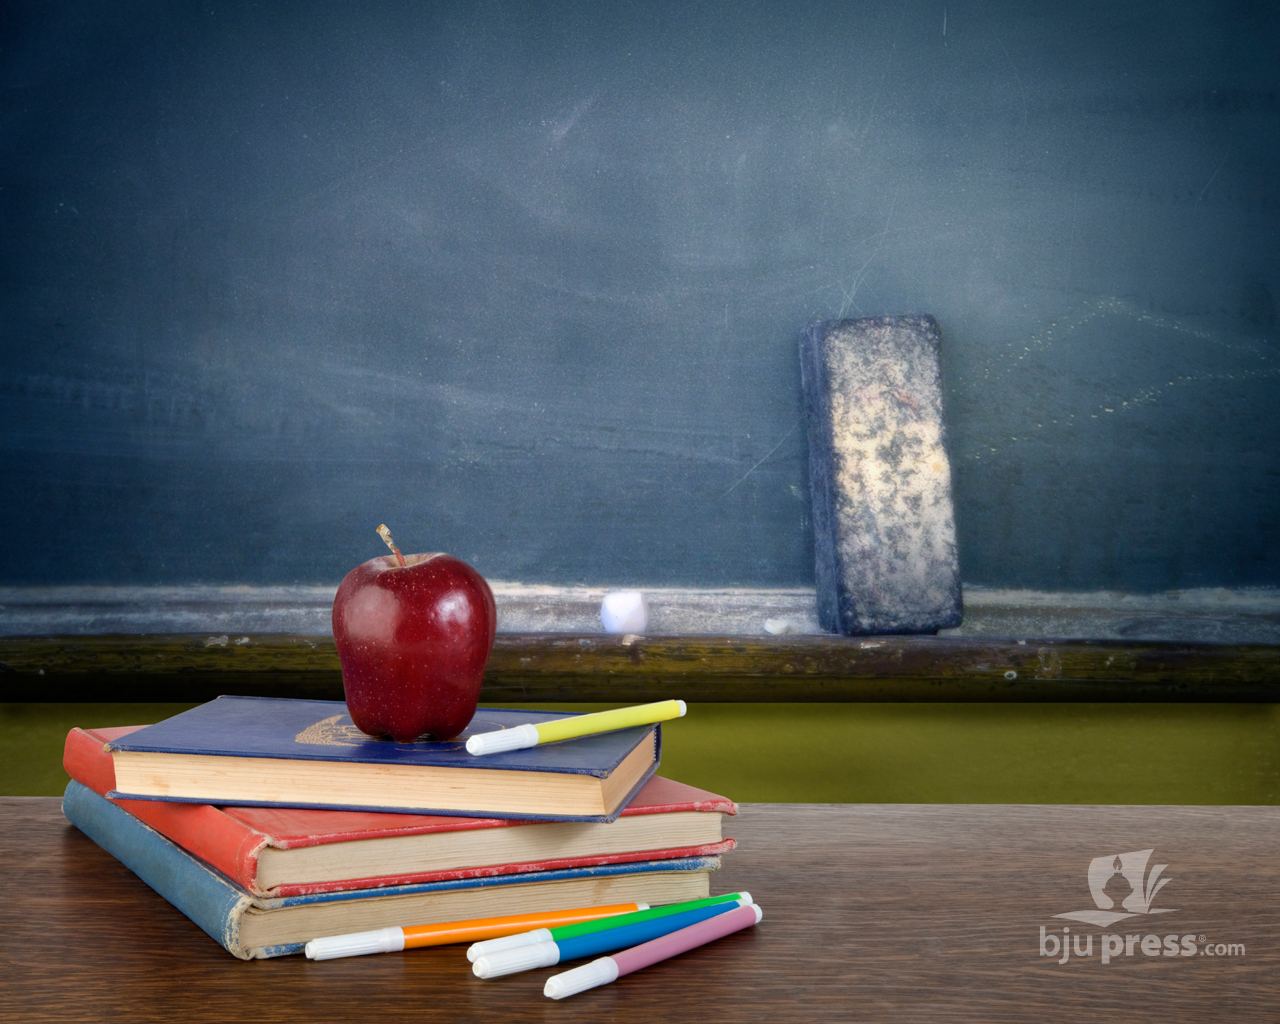 School Wallpaper Images   33 School Modern 4K Ultra HD 1280x1024